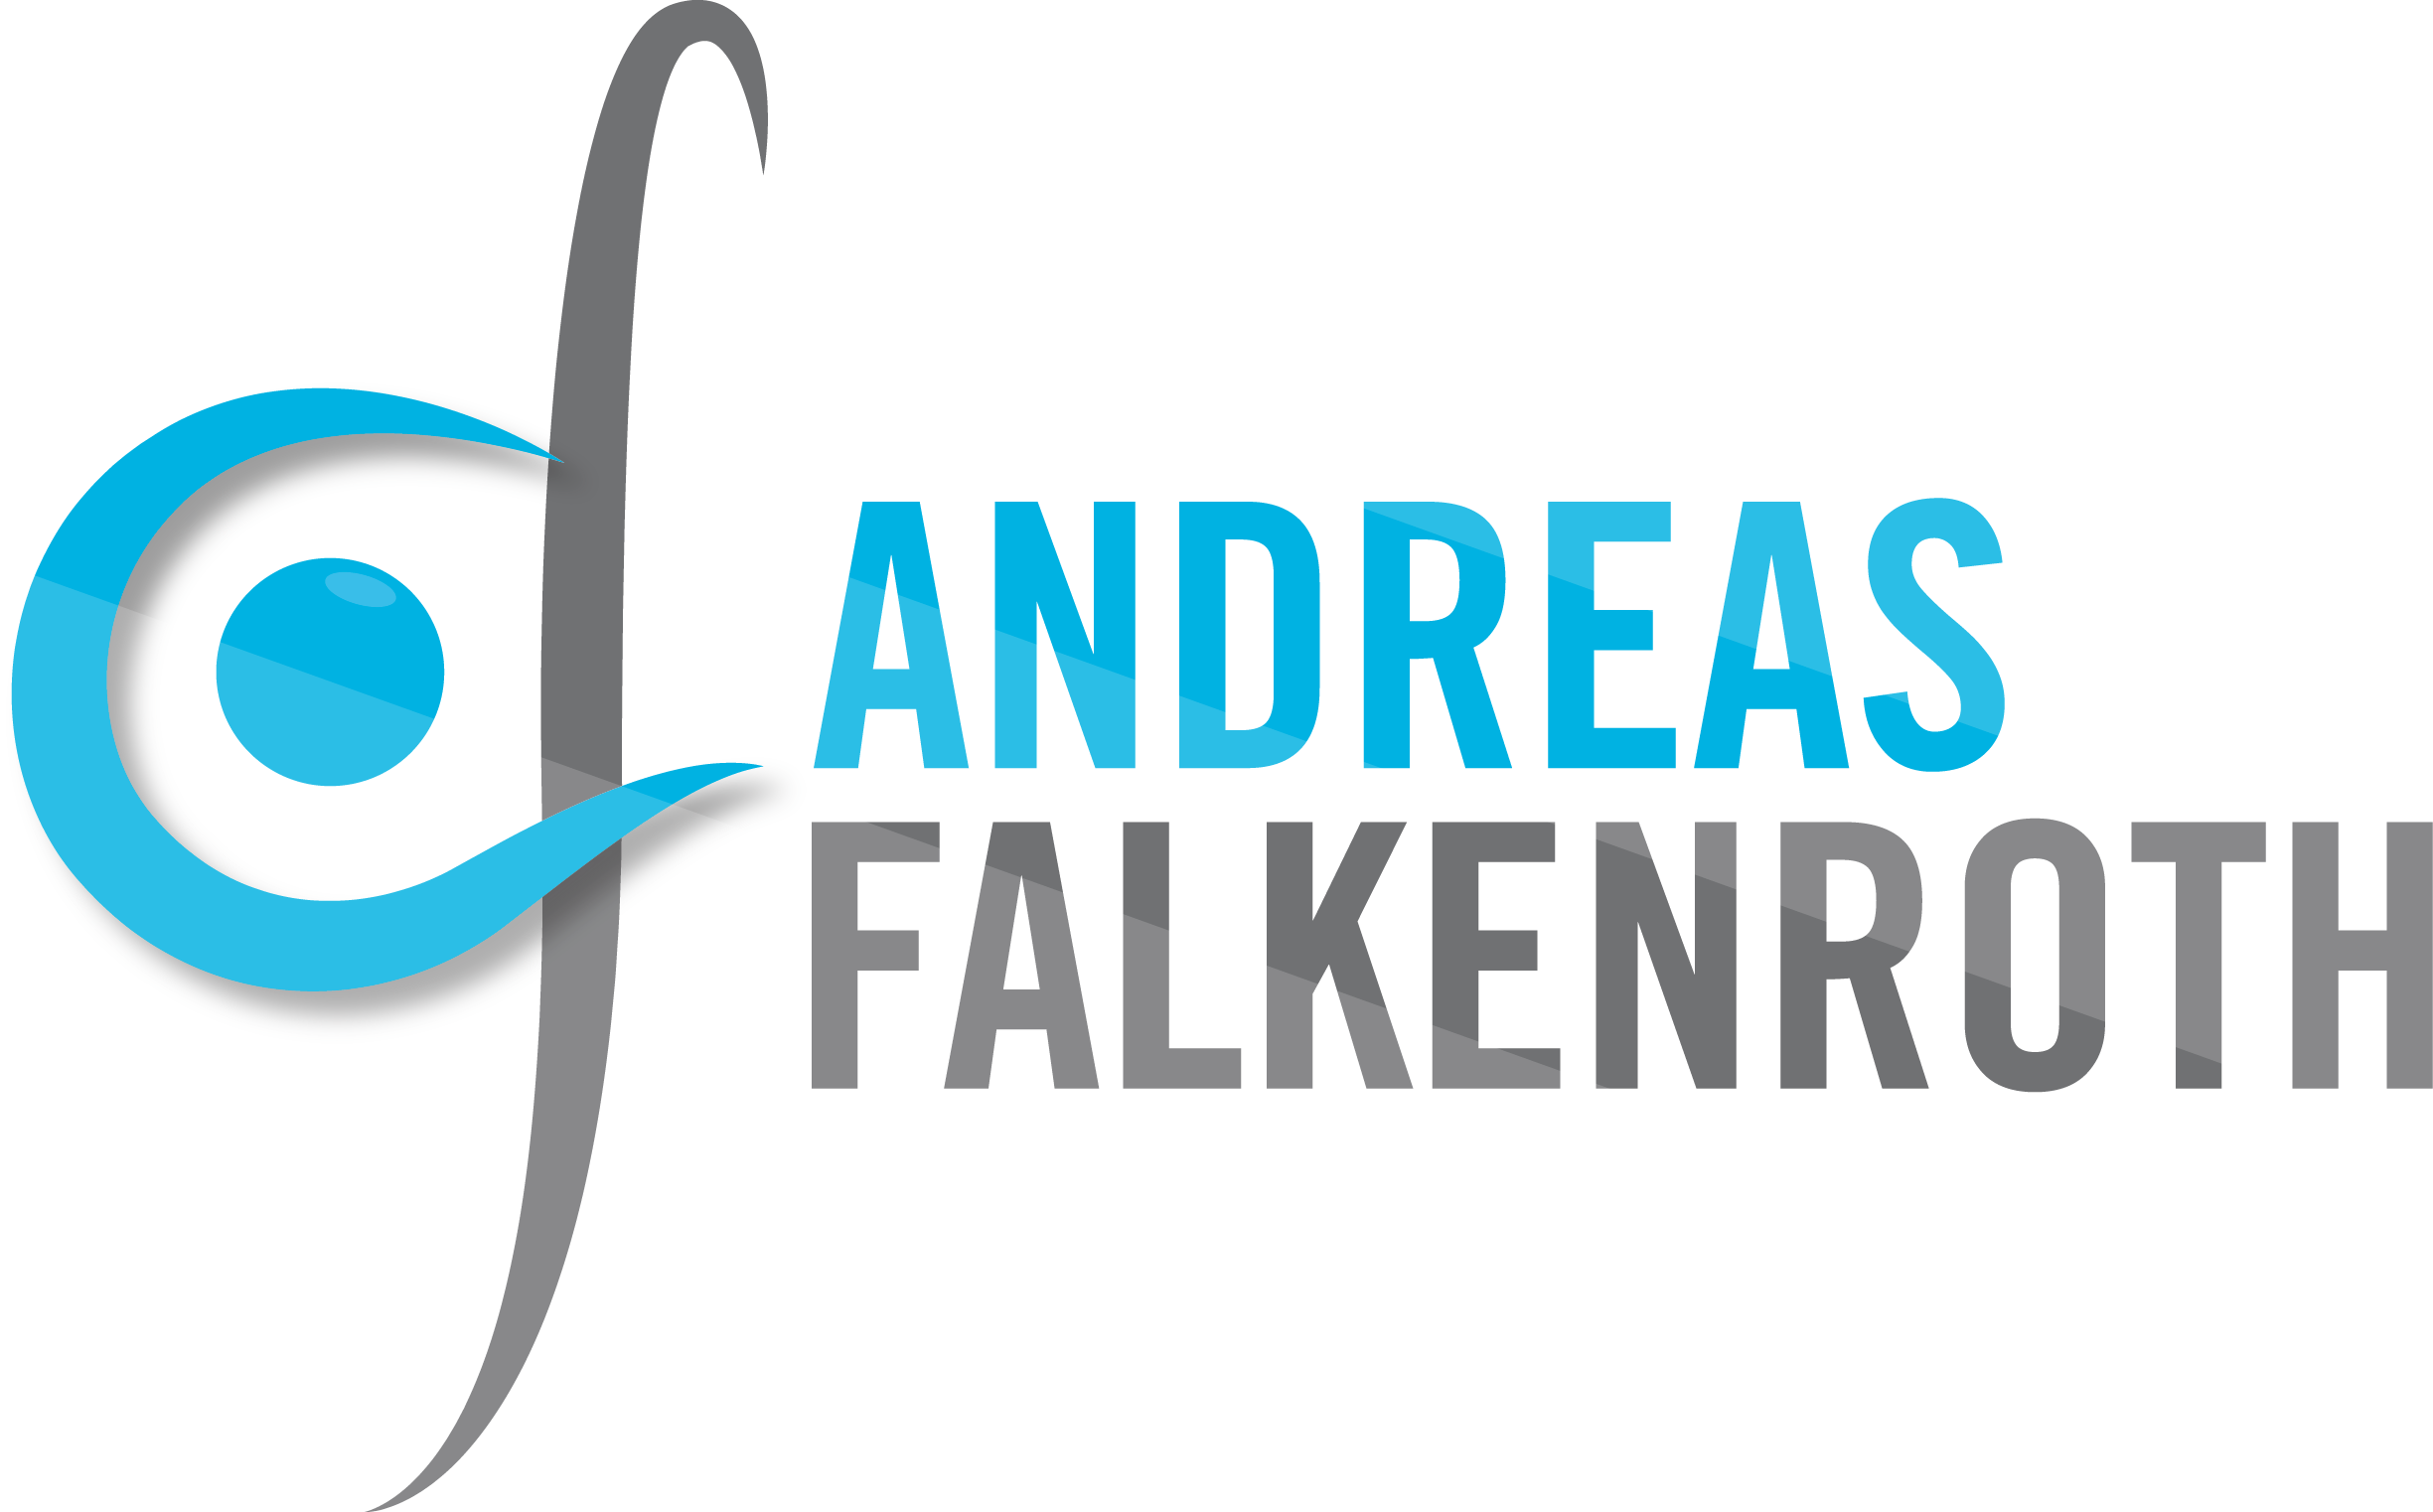 ANDREAS FALKENROTH